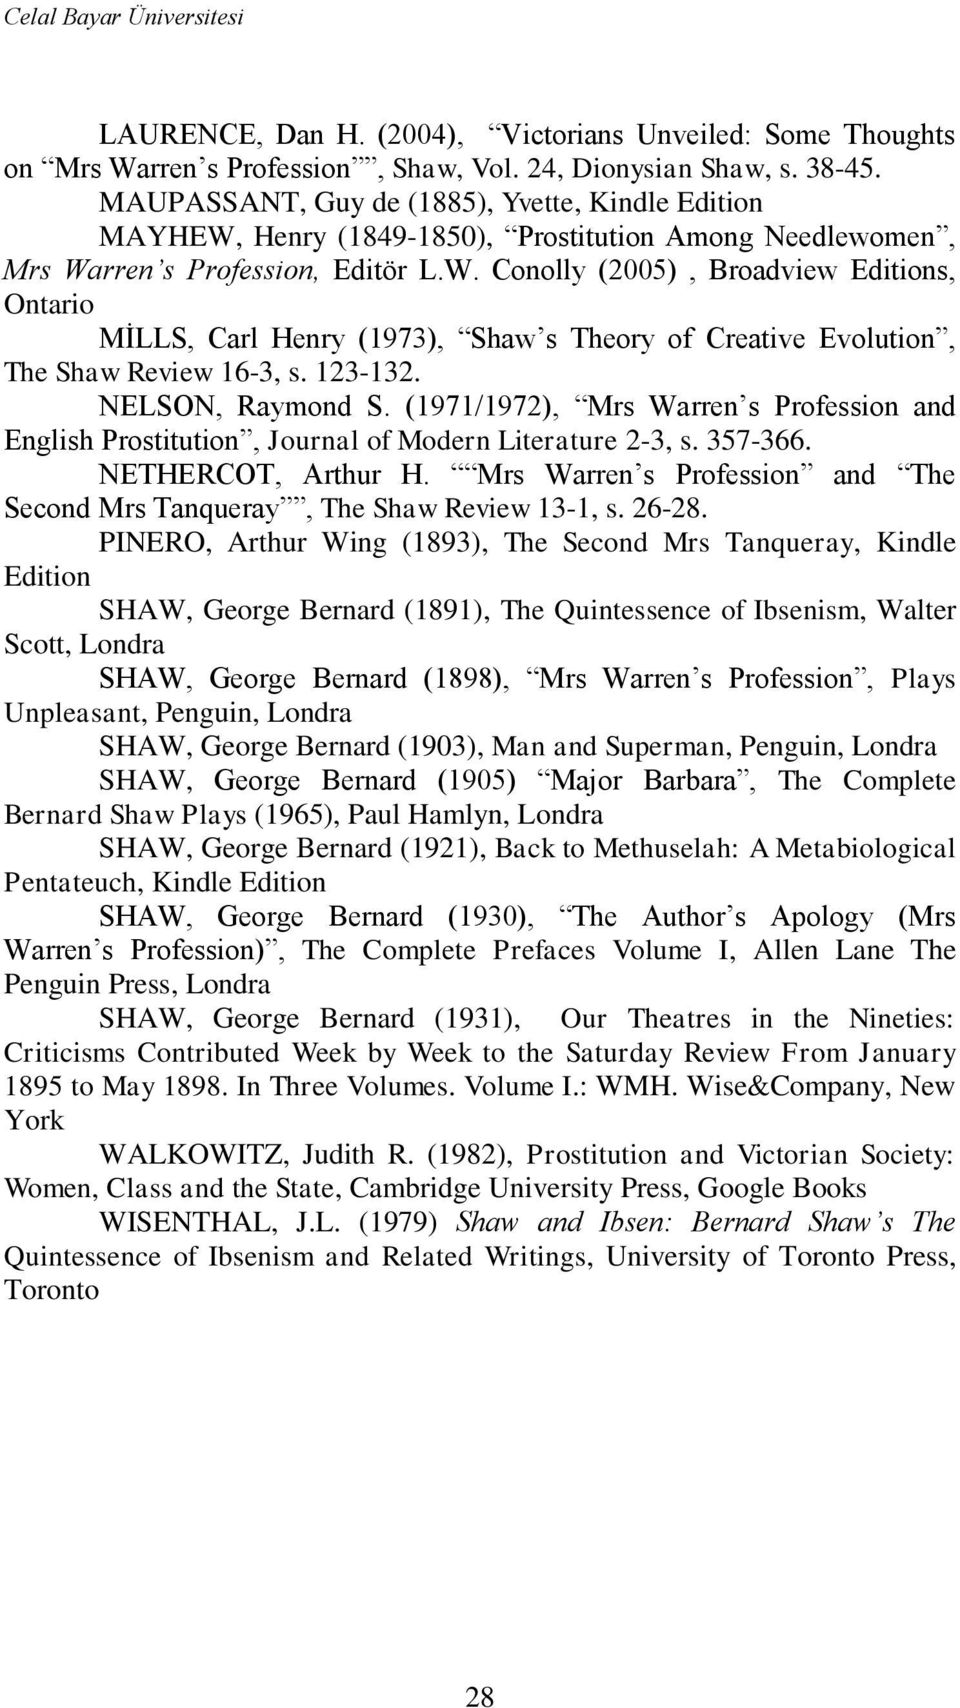 123-132. NELSON, Raymond S. (1971/1972), Mrs Warren s Profession and English Prostitution, Journal of Modern Literature 2-3, s. 357-366. NETHERCOT, Arthur H.